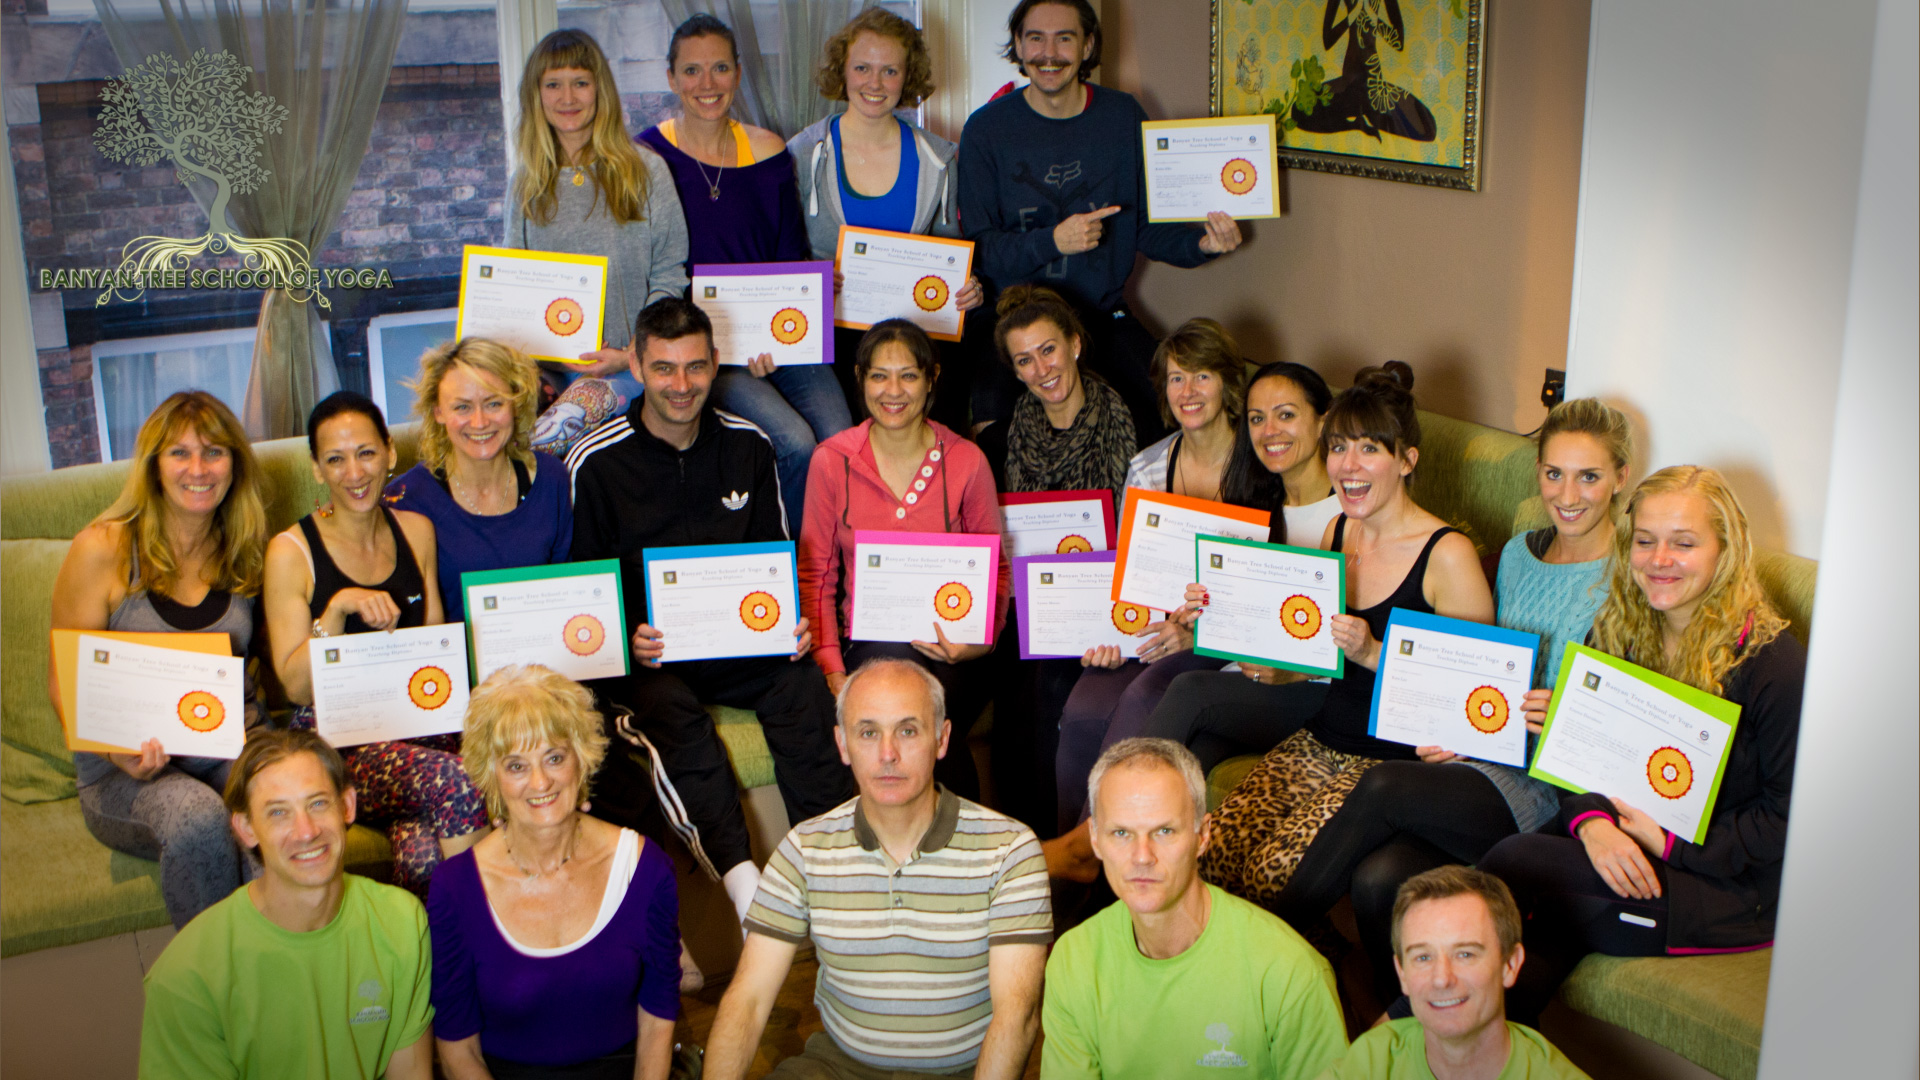 Teacher Training Photo With Certificates